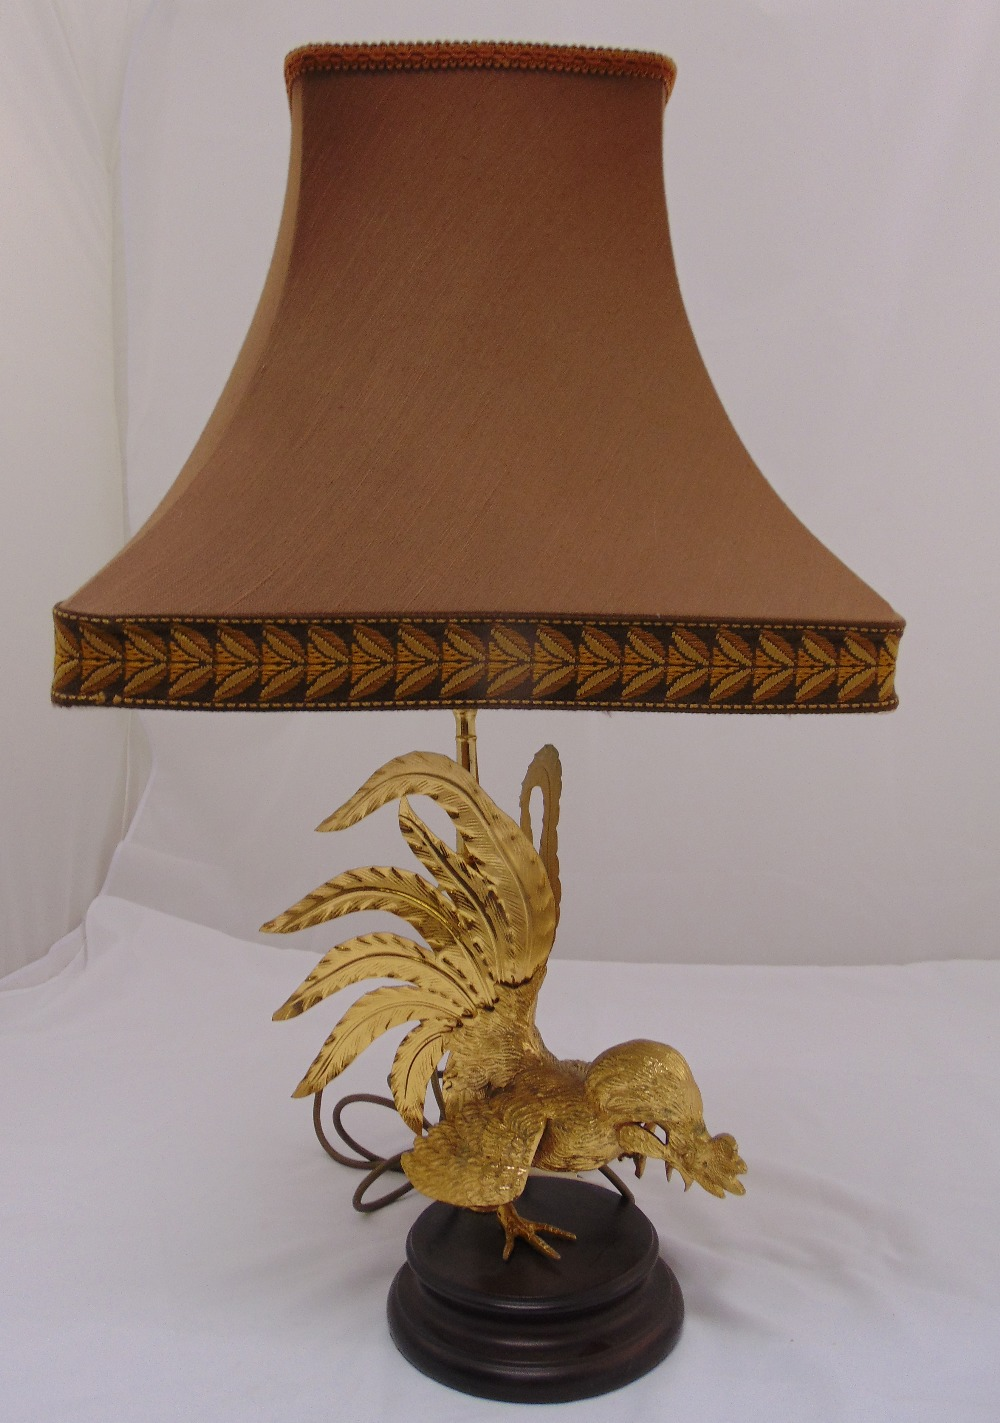 Lot 37 - A gilded metal table lamp in the form of a cockerel on circular wooden base, to include shade,